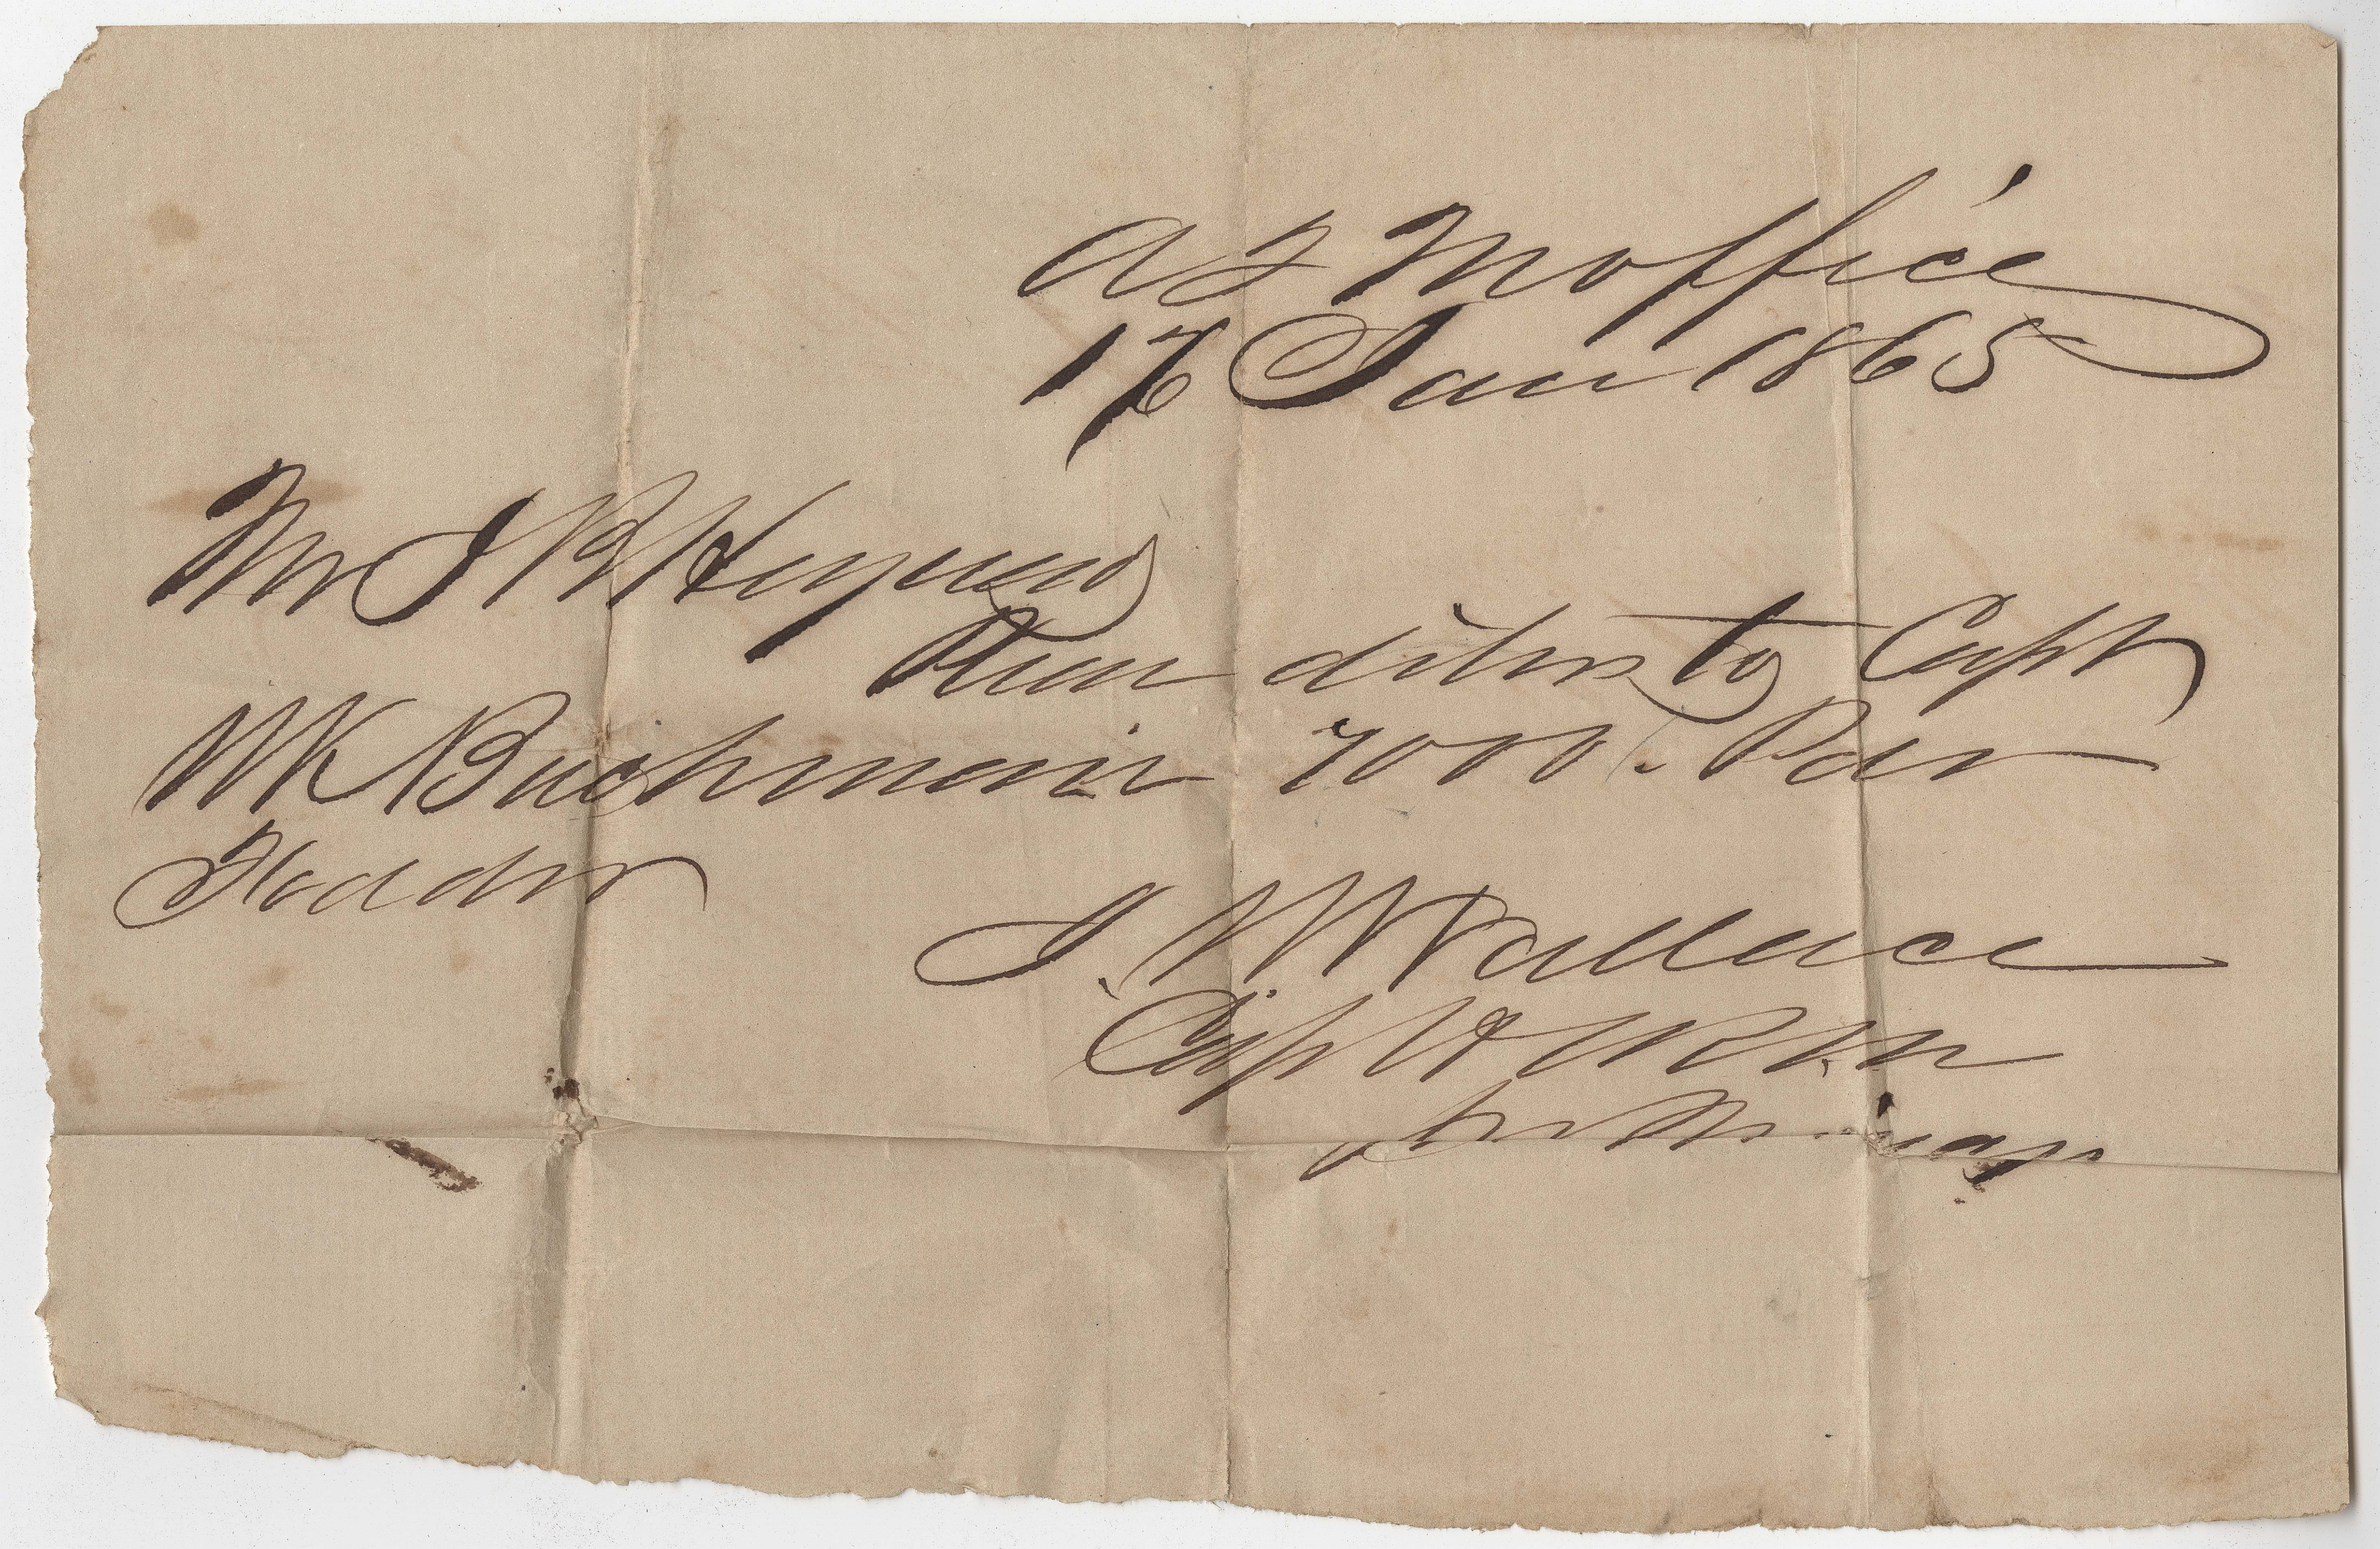 227. Receipts and orders for James B. Heyward from quartermaster's office  -- January 1865